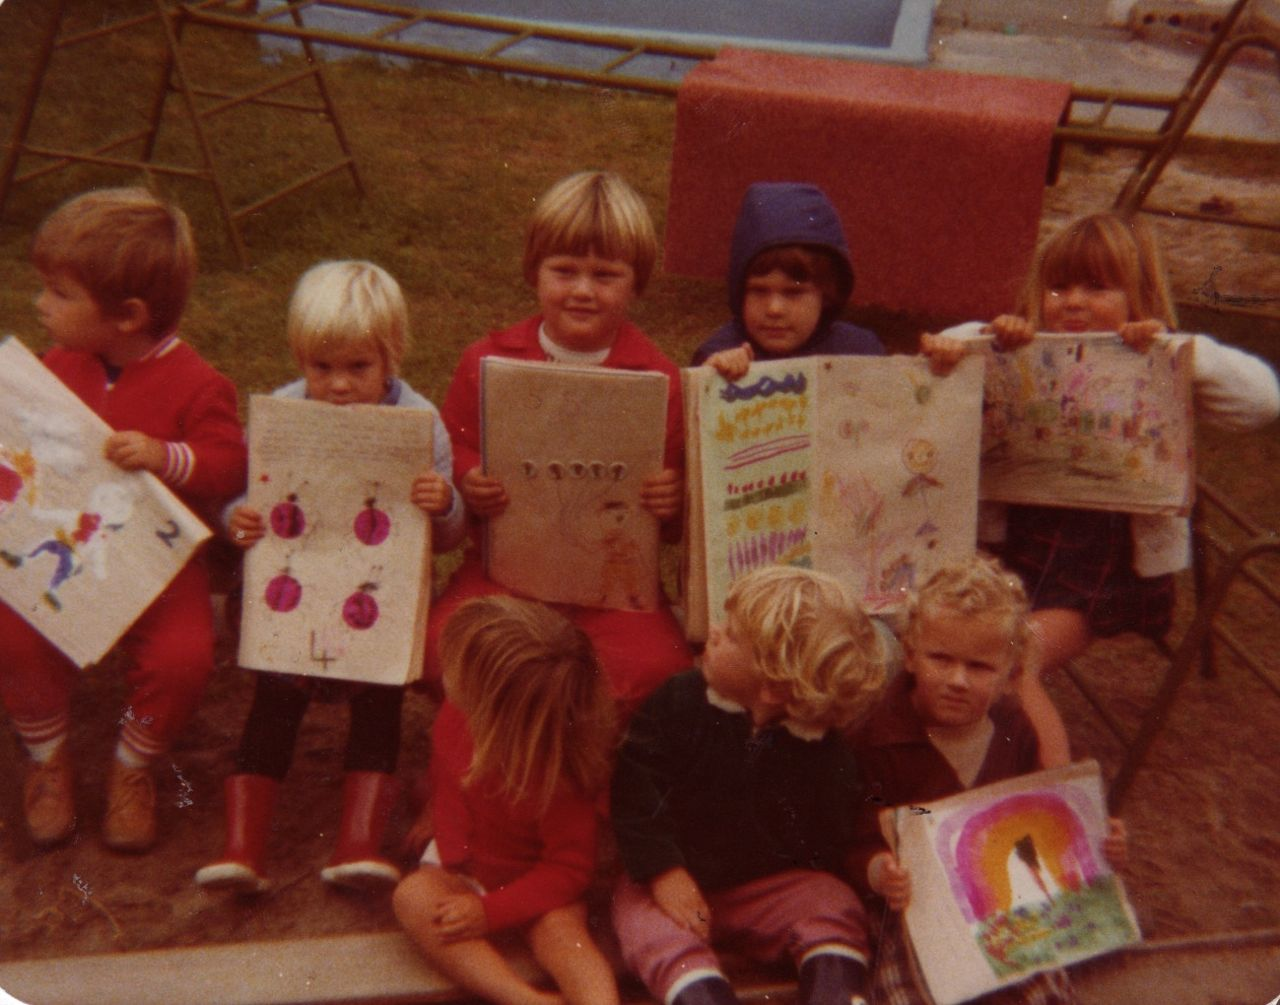 This was taken before I started going to school - at Play-Group. I'm the one on the far right.